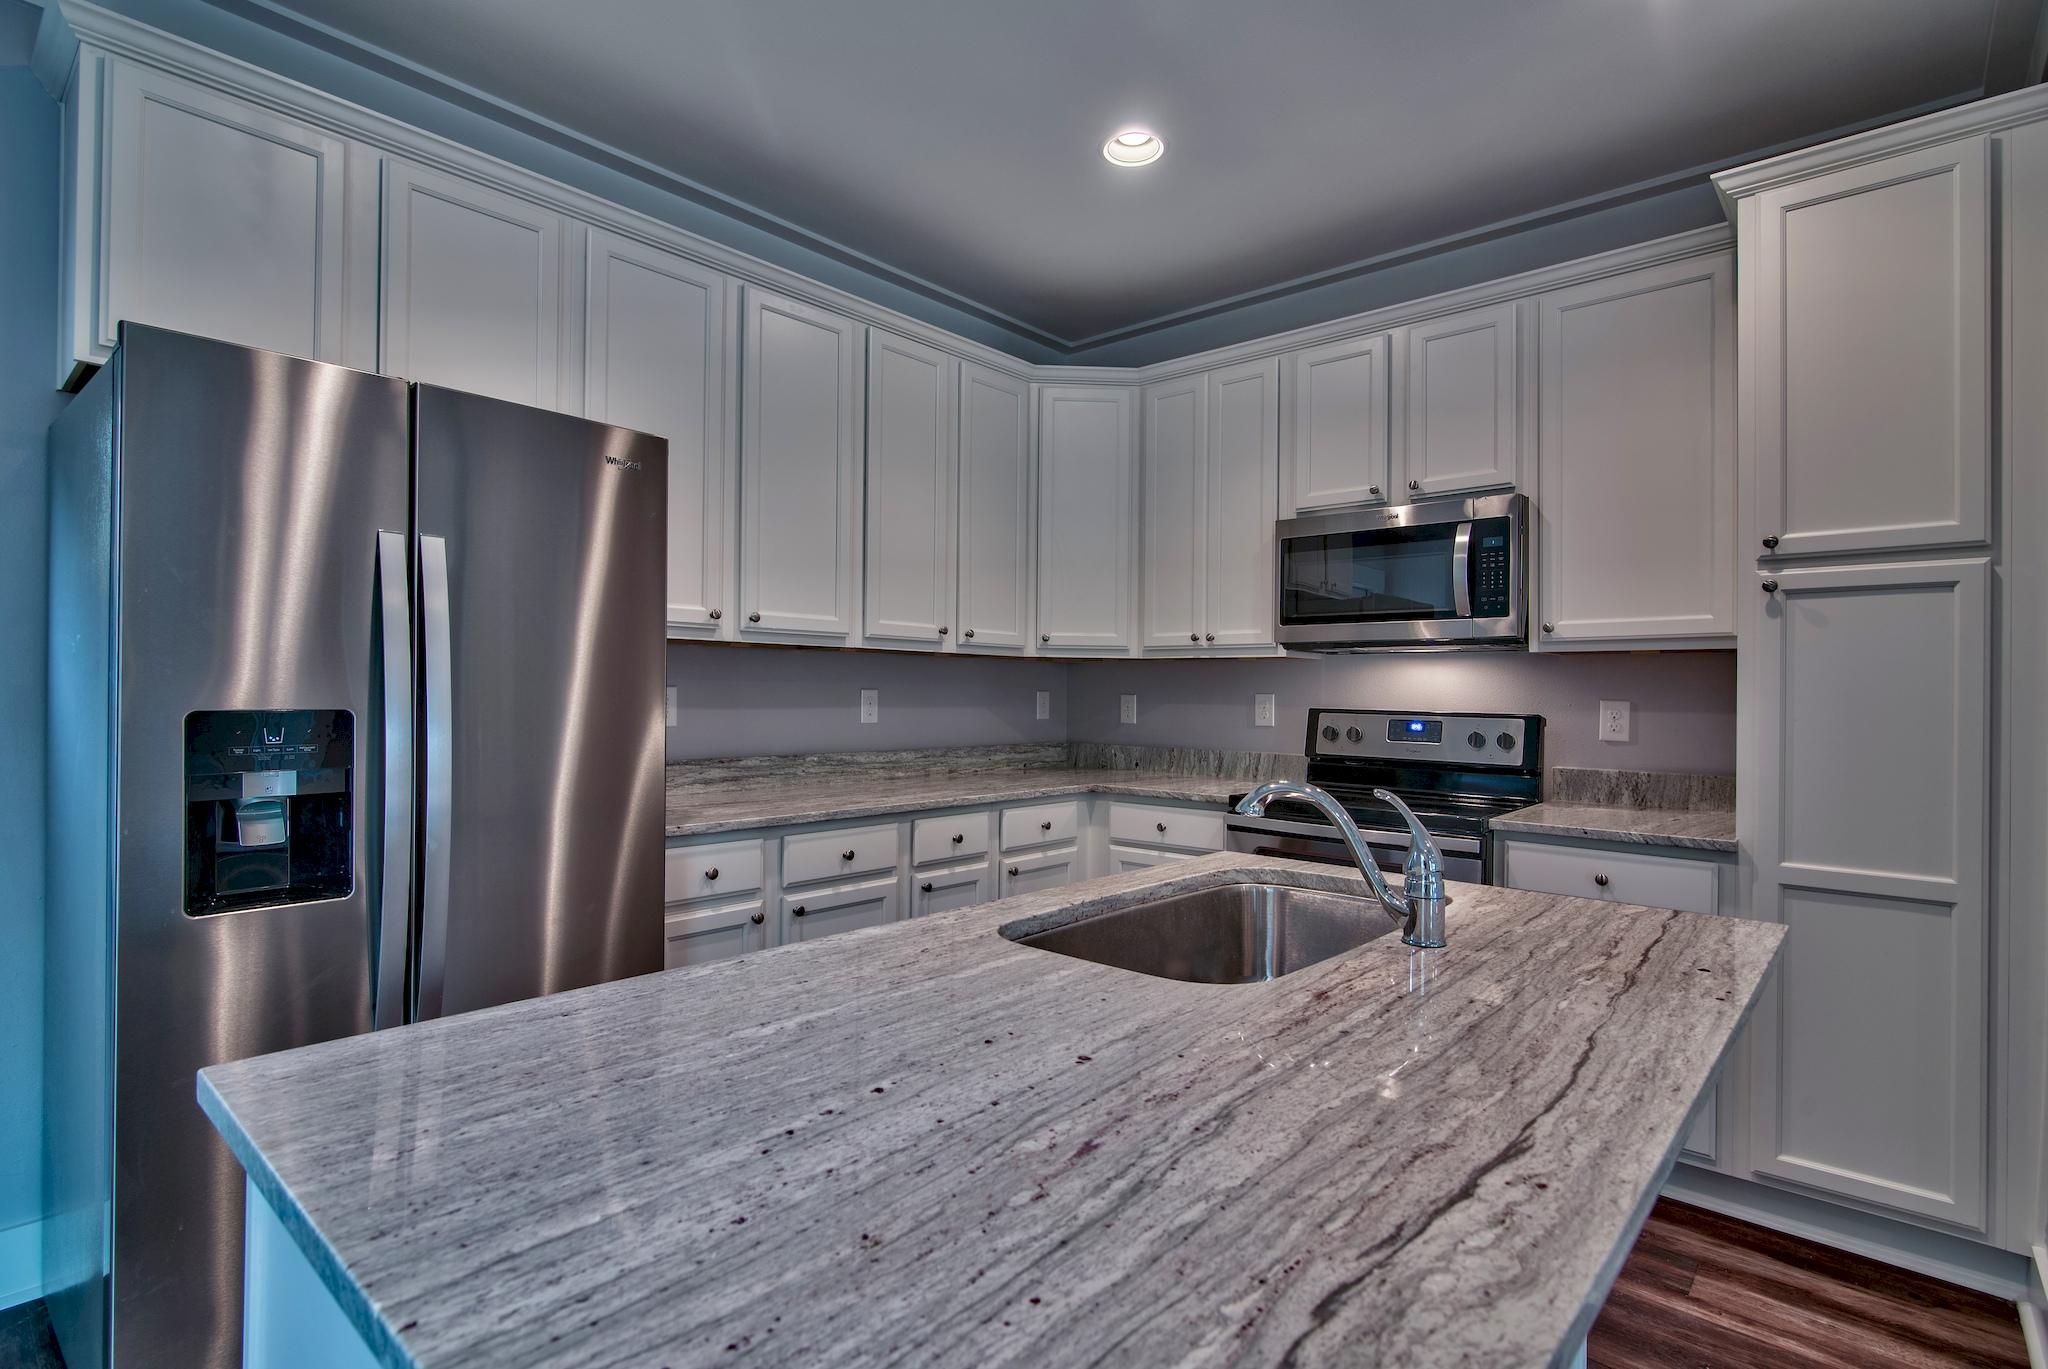 LAST GARAGE UNIT IN THE SOUTH END!! Welcome to The Verandas at Freeport! The Verandas provides you with peaceful serenity for those who want to live close to the beautiful beaches of South Walton without having to deal with the massive crowds and busy streets. Living at The Verandas will put you 15min away from the beach, 20min away from the major shopping and entertainment destinations and 30-40min away from Eglin AFB. The Verandas are currently building out brand new townhomes with three different floor-plans for you to choose from.  These units will include metal roofing, stainless steel appliances, granite countertops, 14 seer ac units, open floor-plans, craftsmen style trim, Sherwin Williams paint, and much more! Call us today for more information!